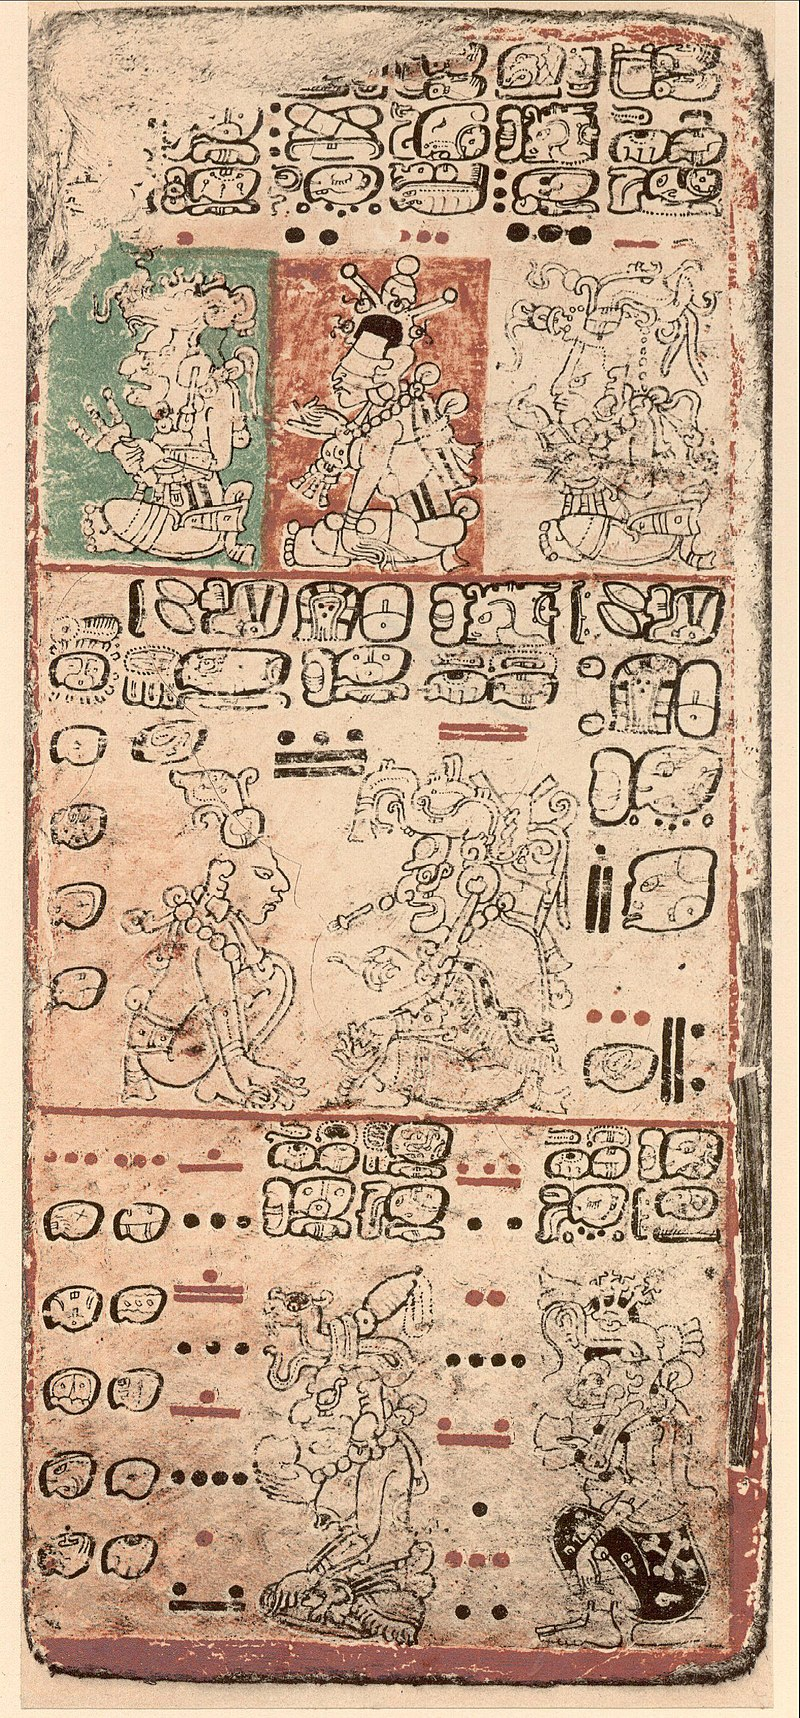 Page 9 of the Dresden Codex (from the 1880 Förstemann edition)